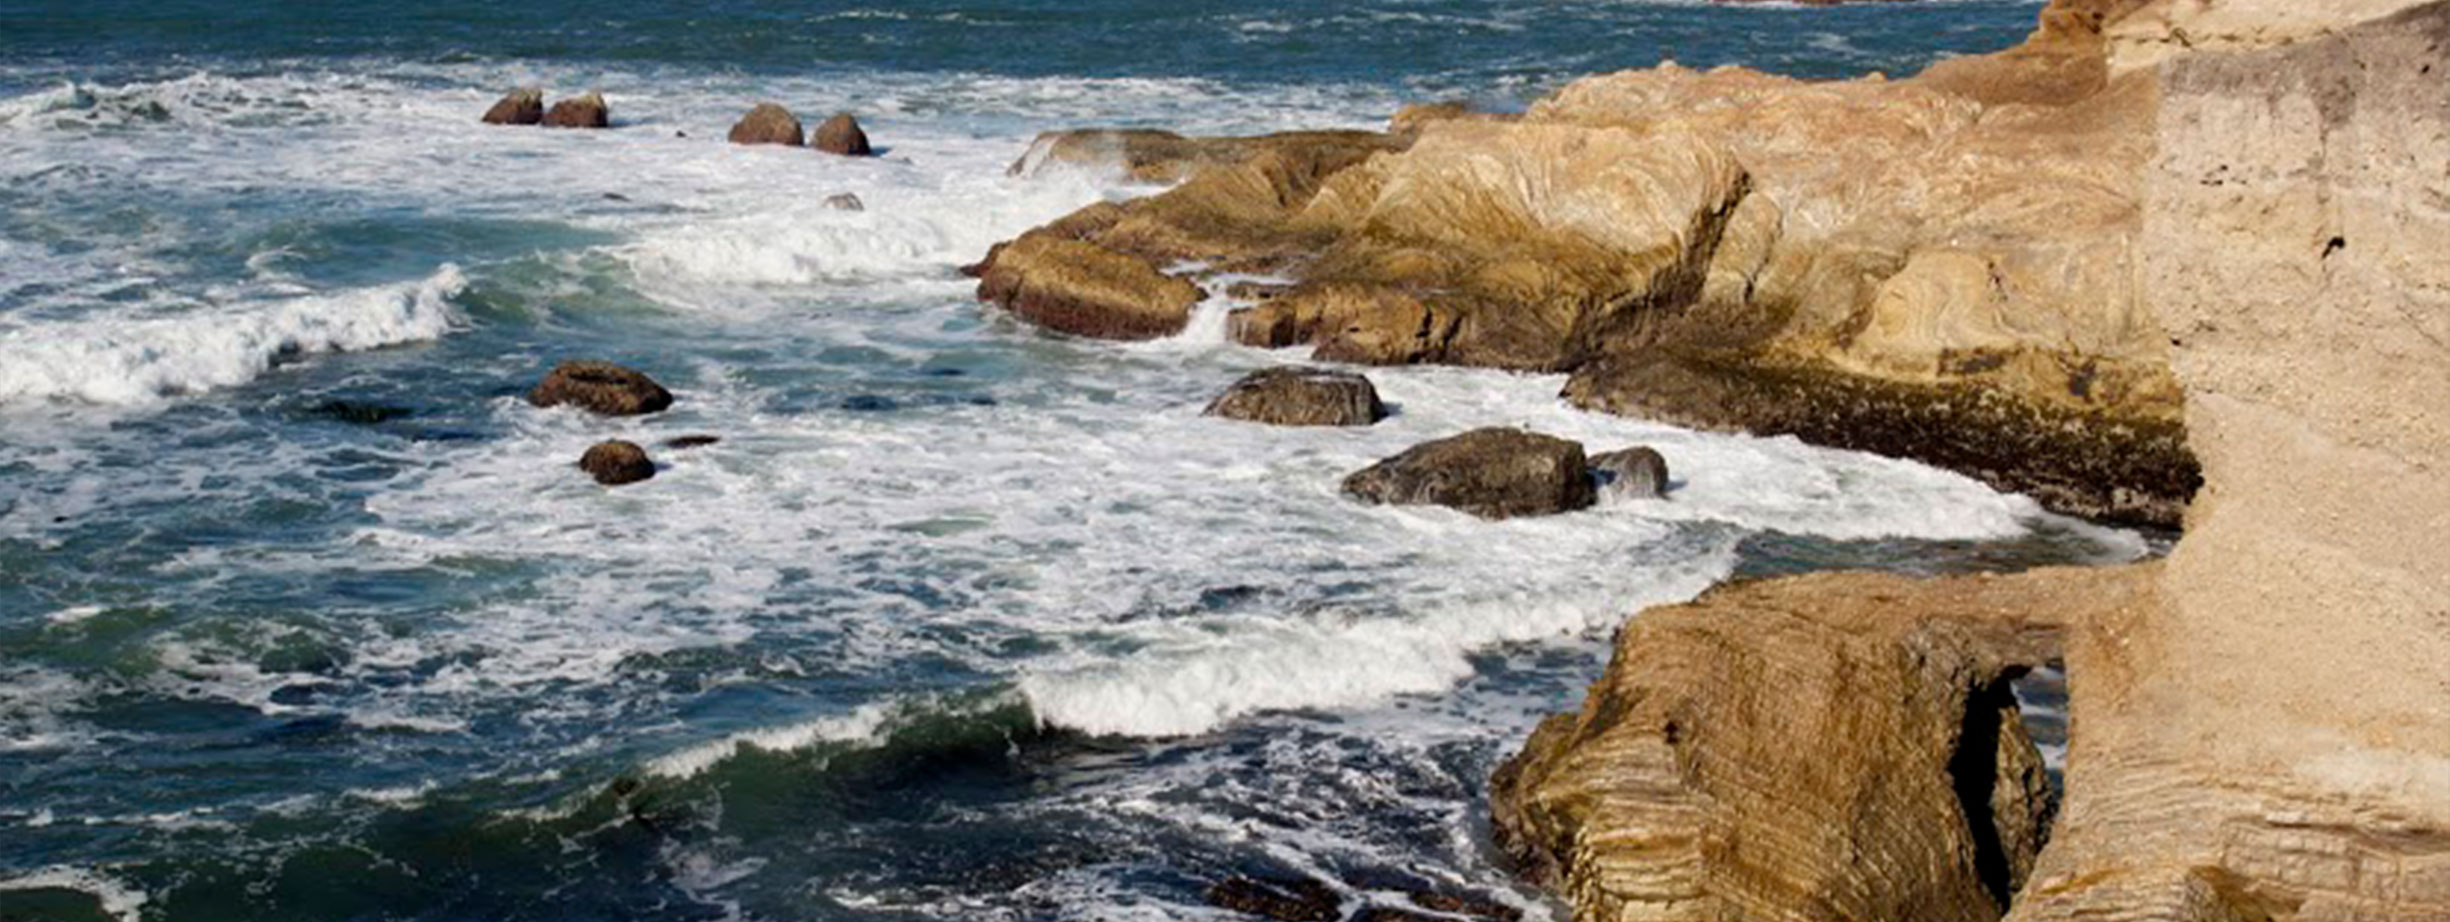 Photo of the rocky coast in Santa Barbara County.